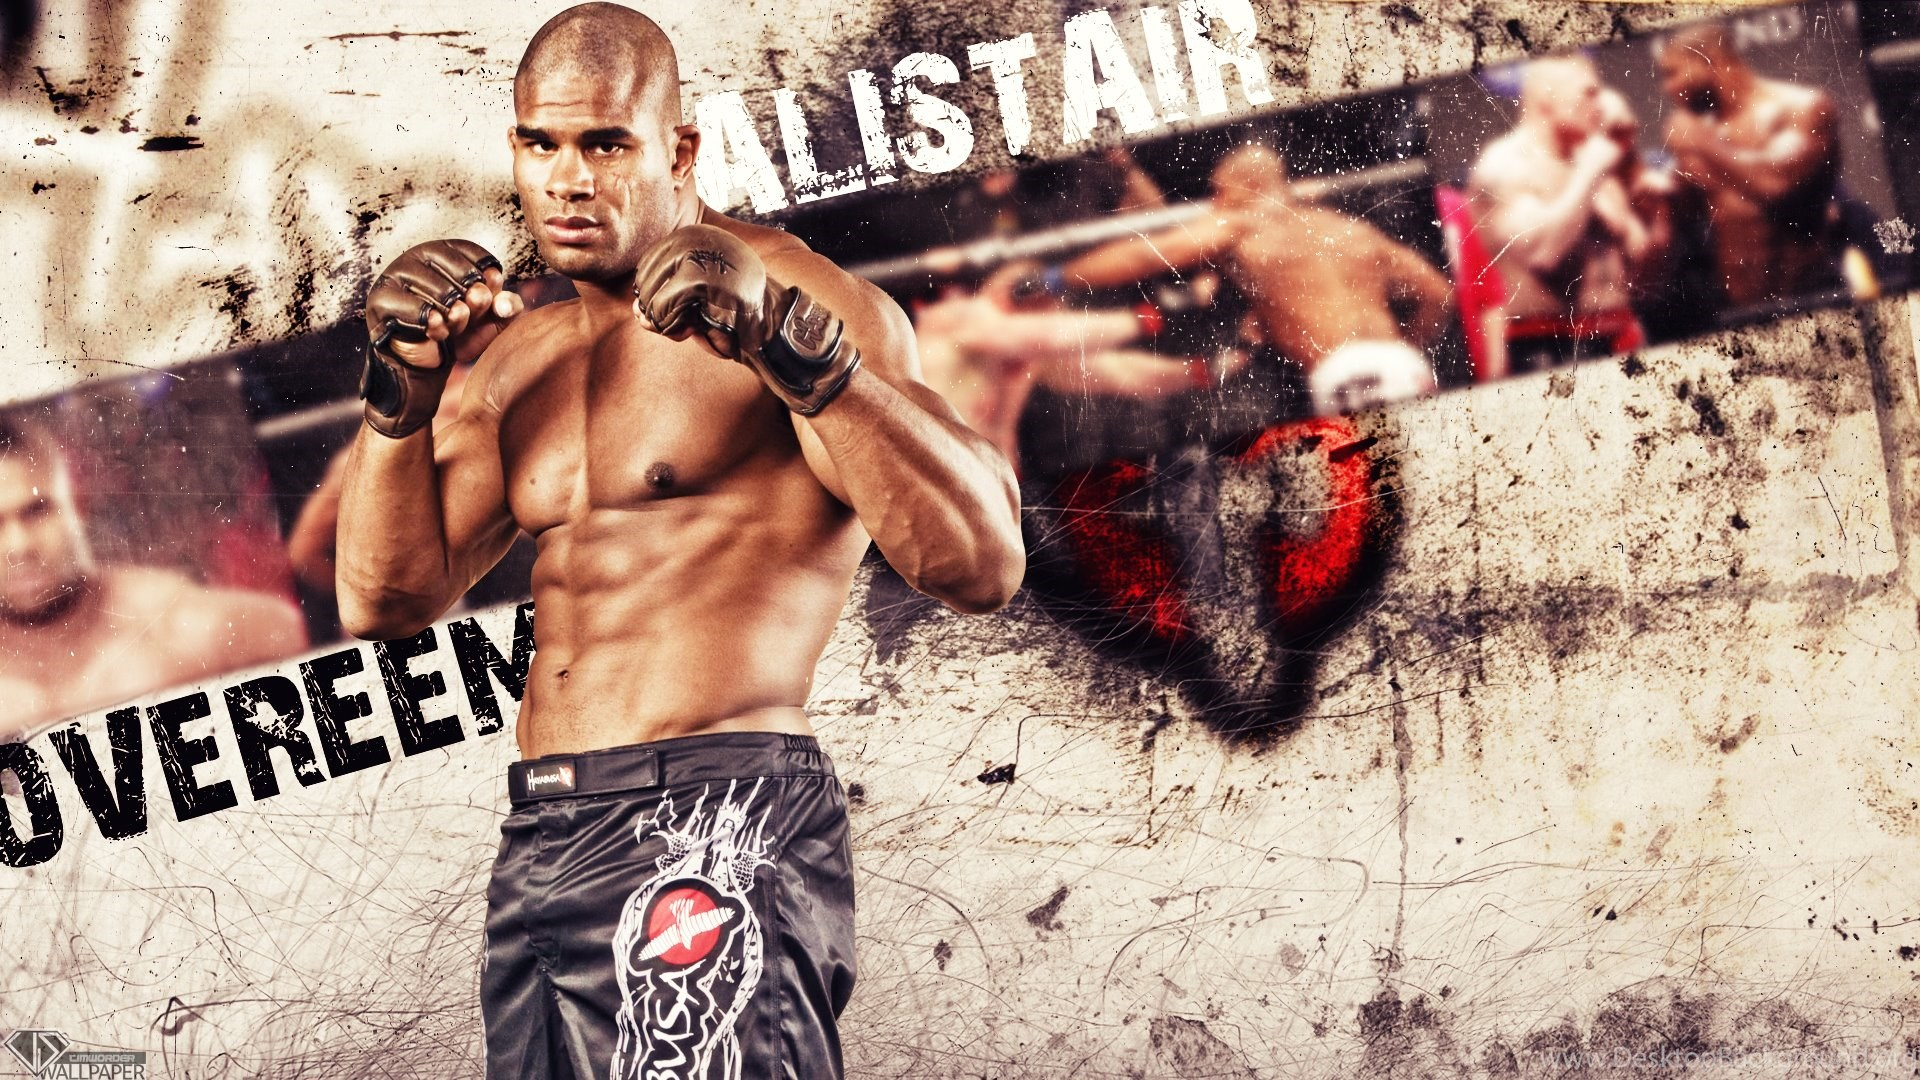 1920x1080 - Alistair Overeem Wallpapers 29